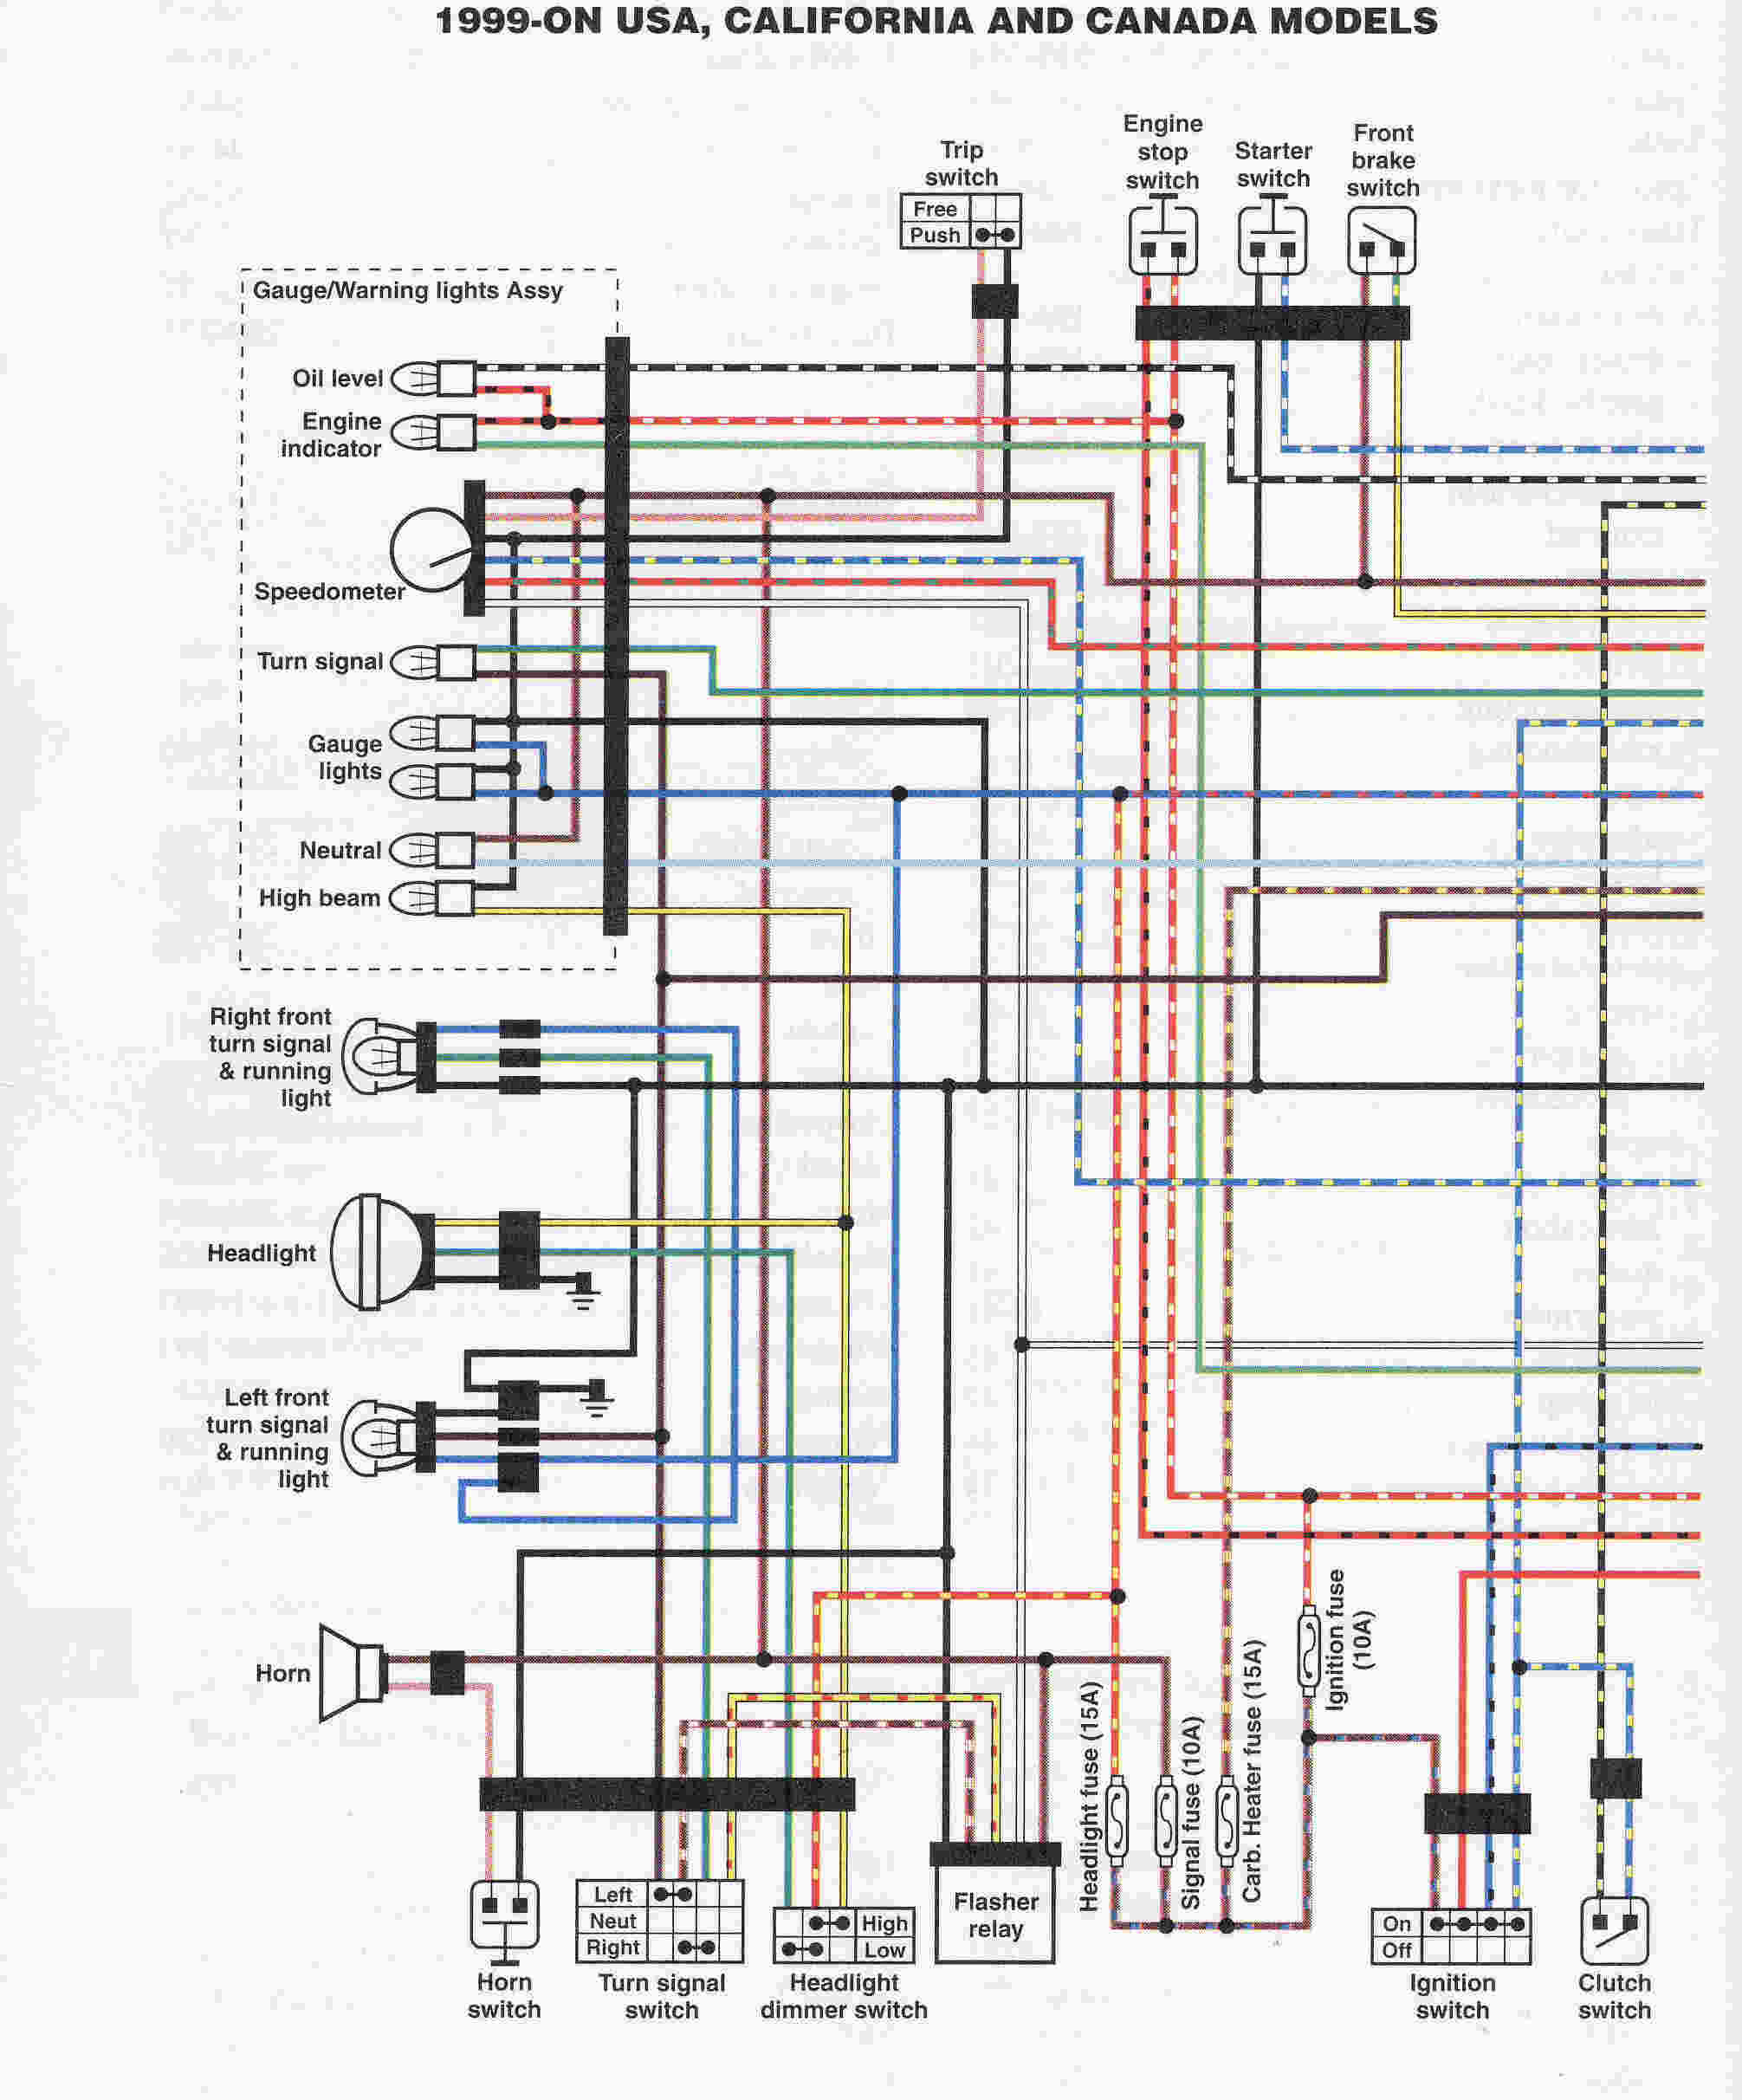 Wiring US 01 scion xb wiring diagram scion free wiring diagrams readingrat net  at soozxer.org